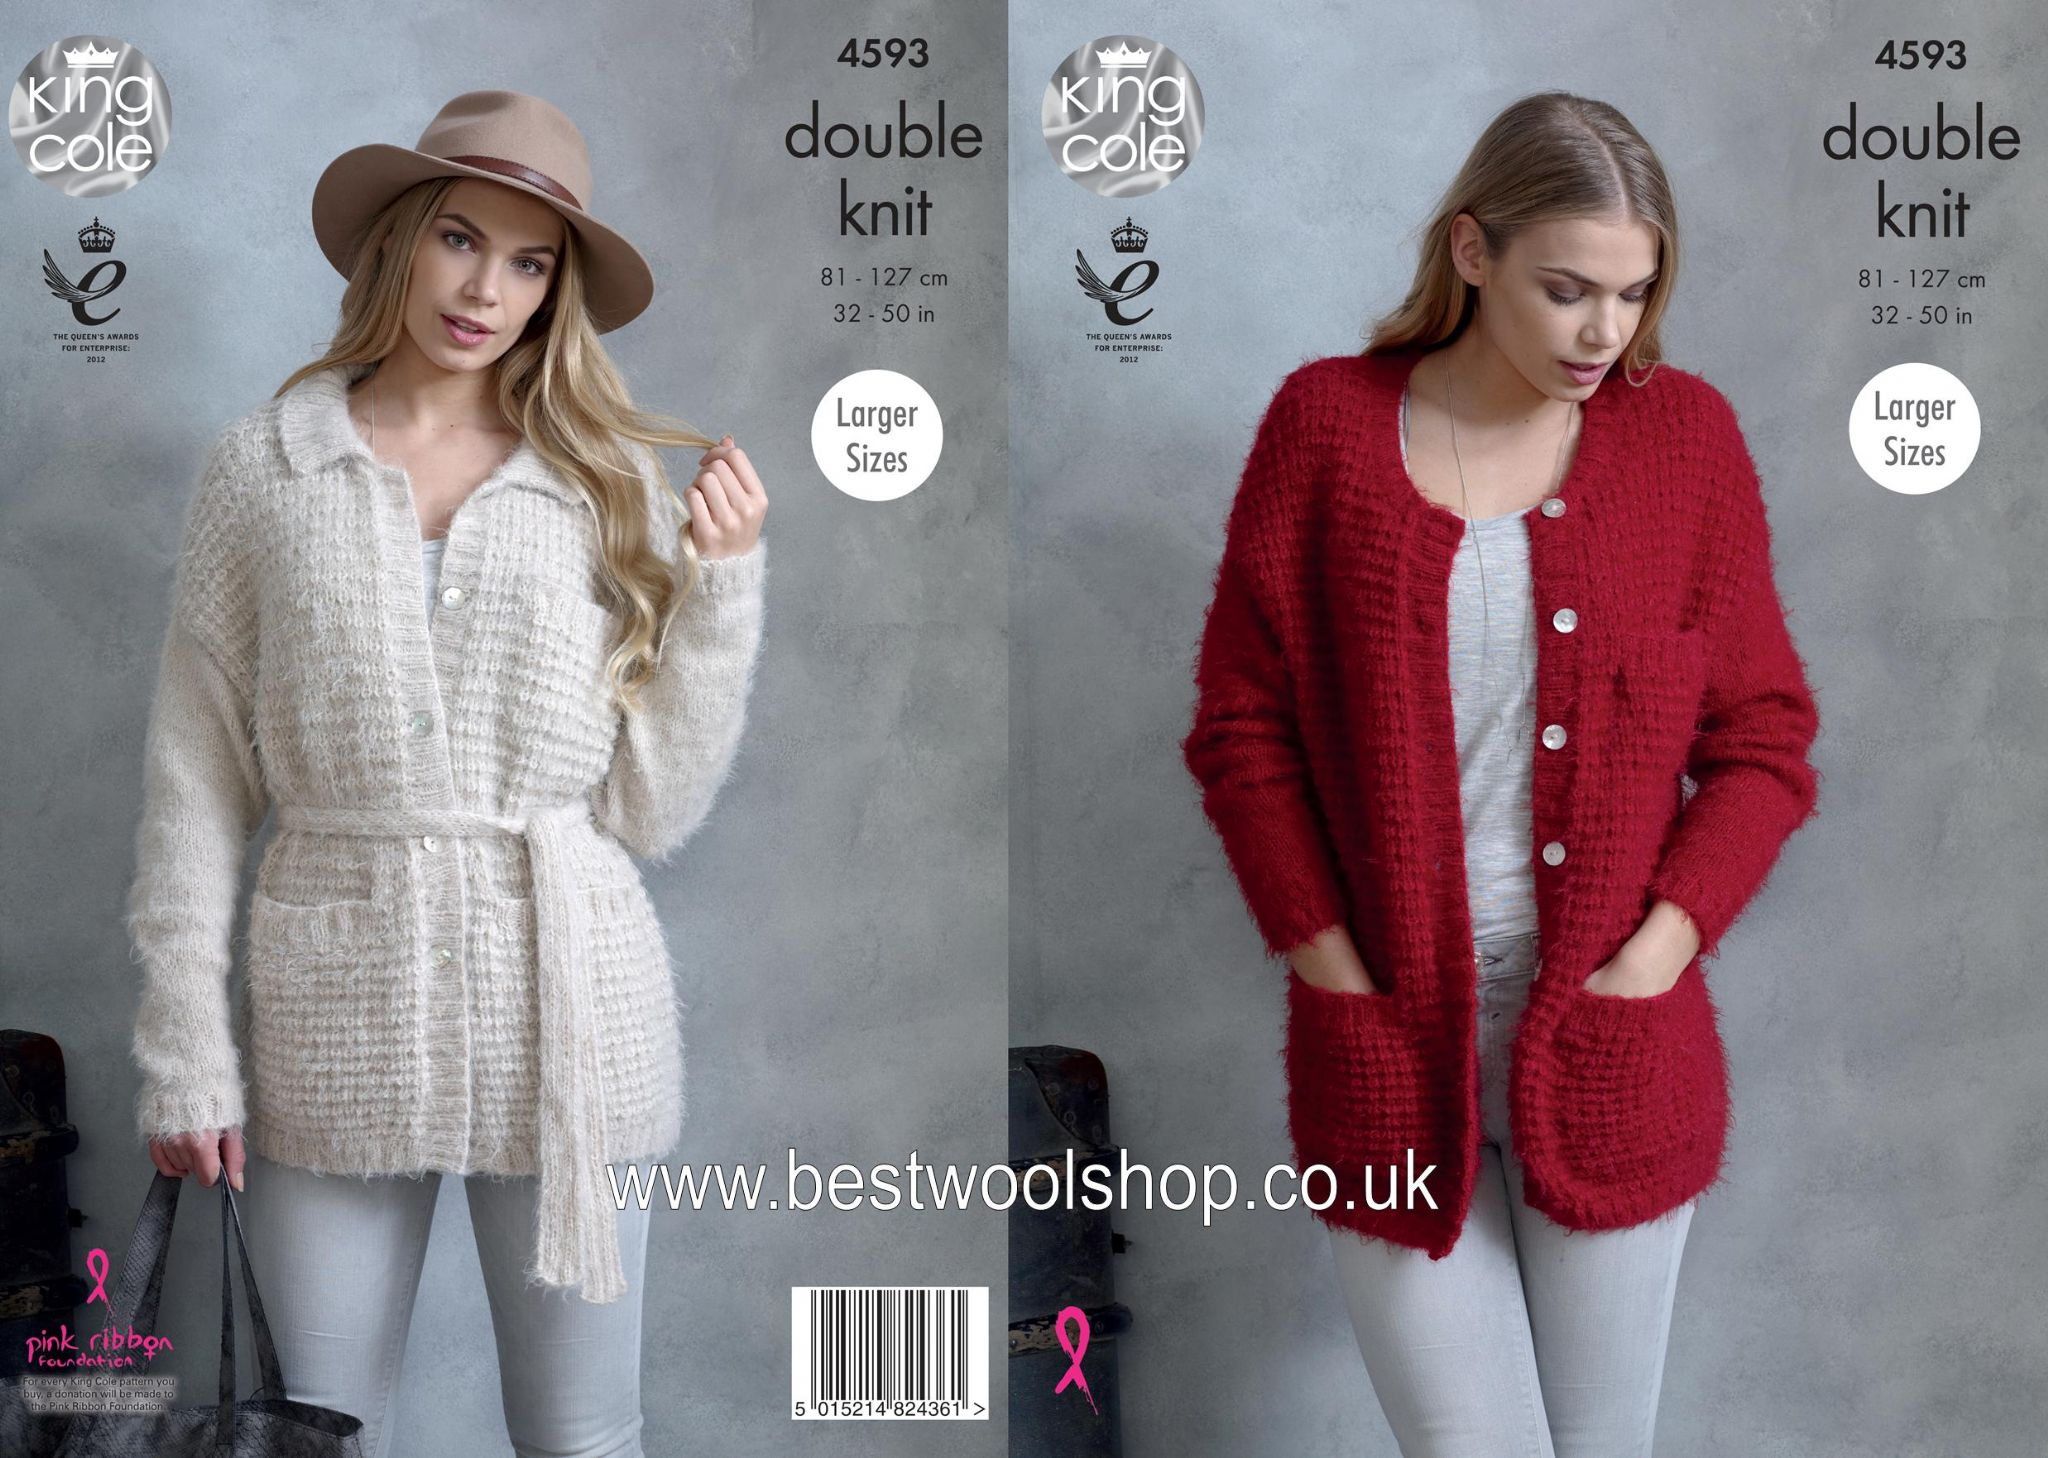 4593 - KING COLE EMBRACE DK COLLAR & ROUND NECK CARDIGAN JACKET WITH ...